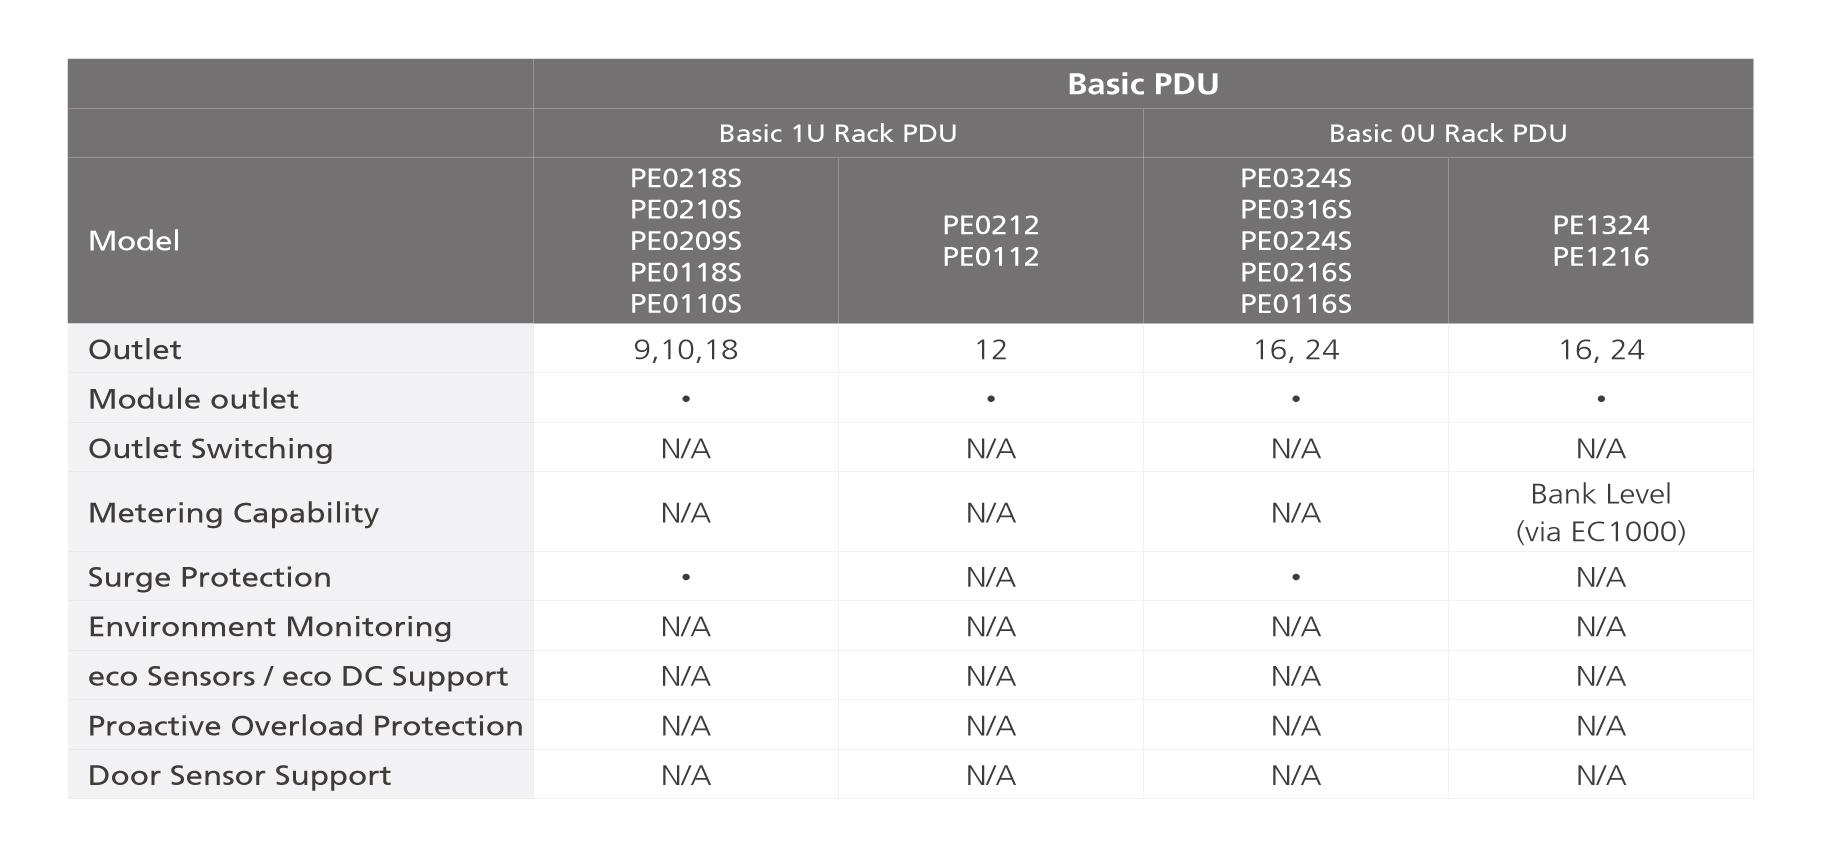 basic_pdu_overview_compare.jpg